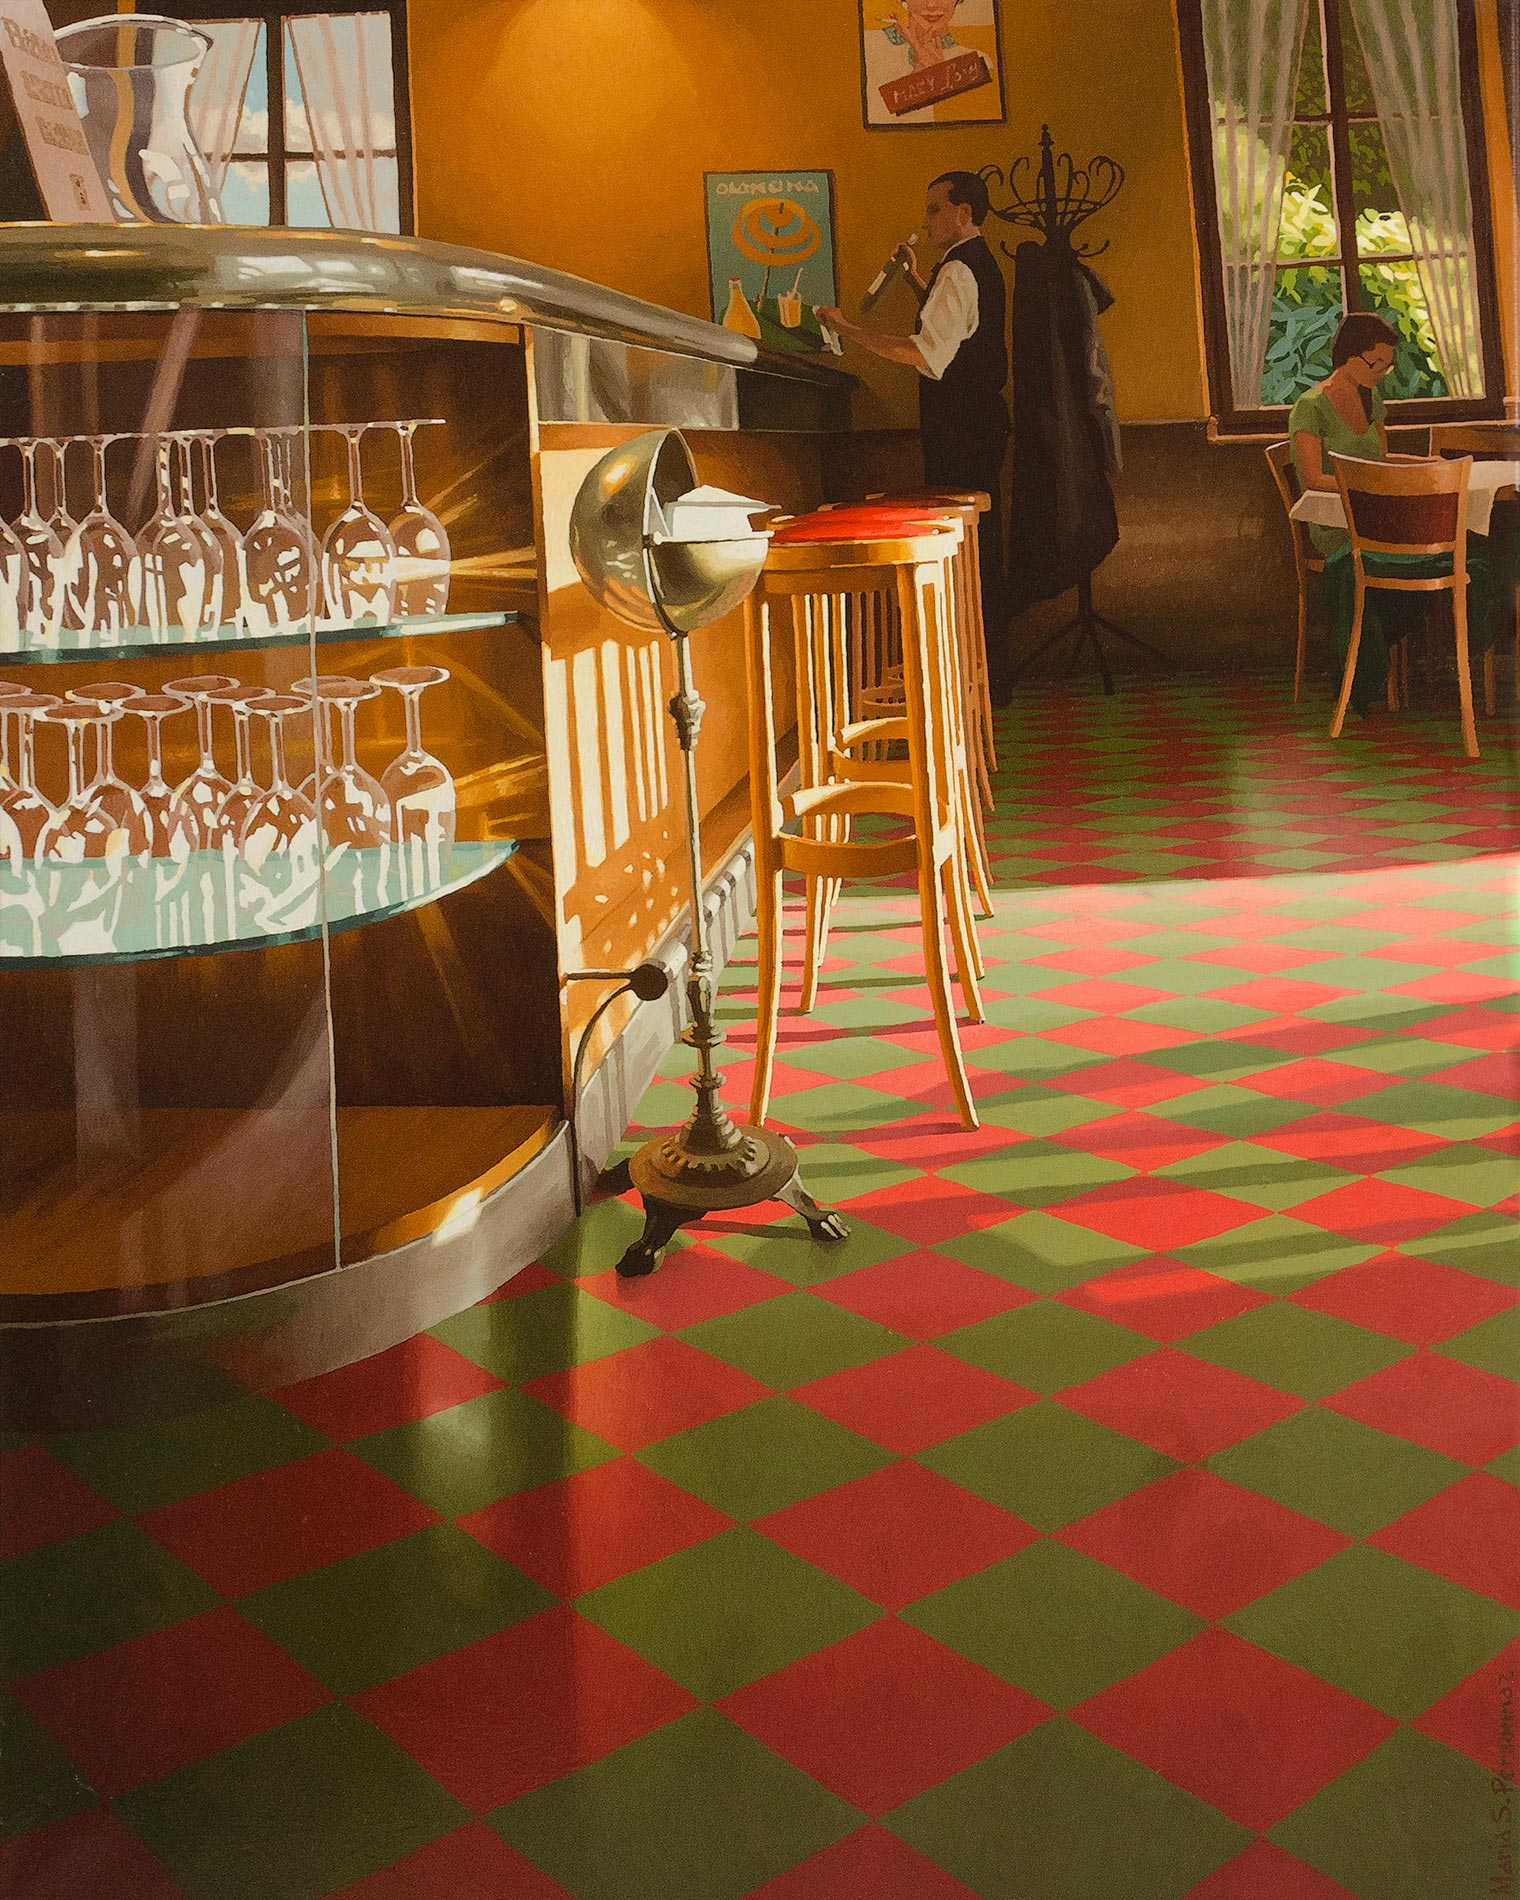 Sunset on a red and green tiling (2)